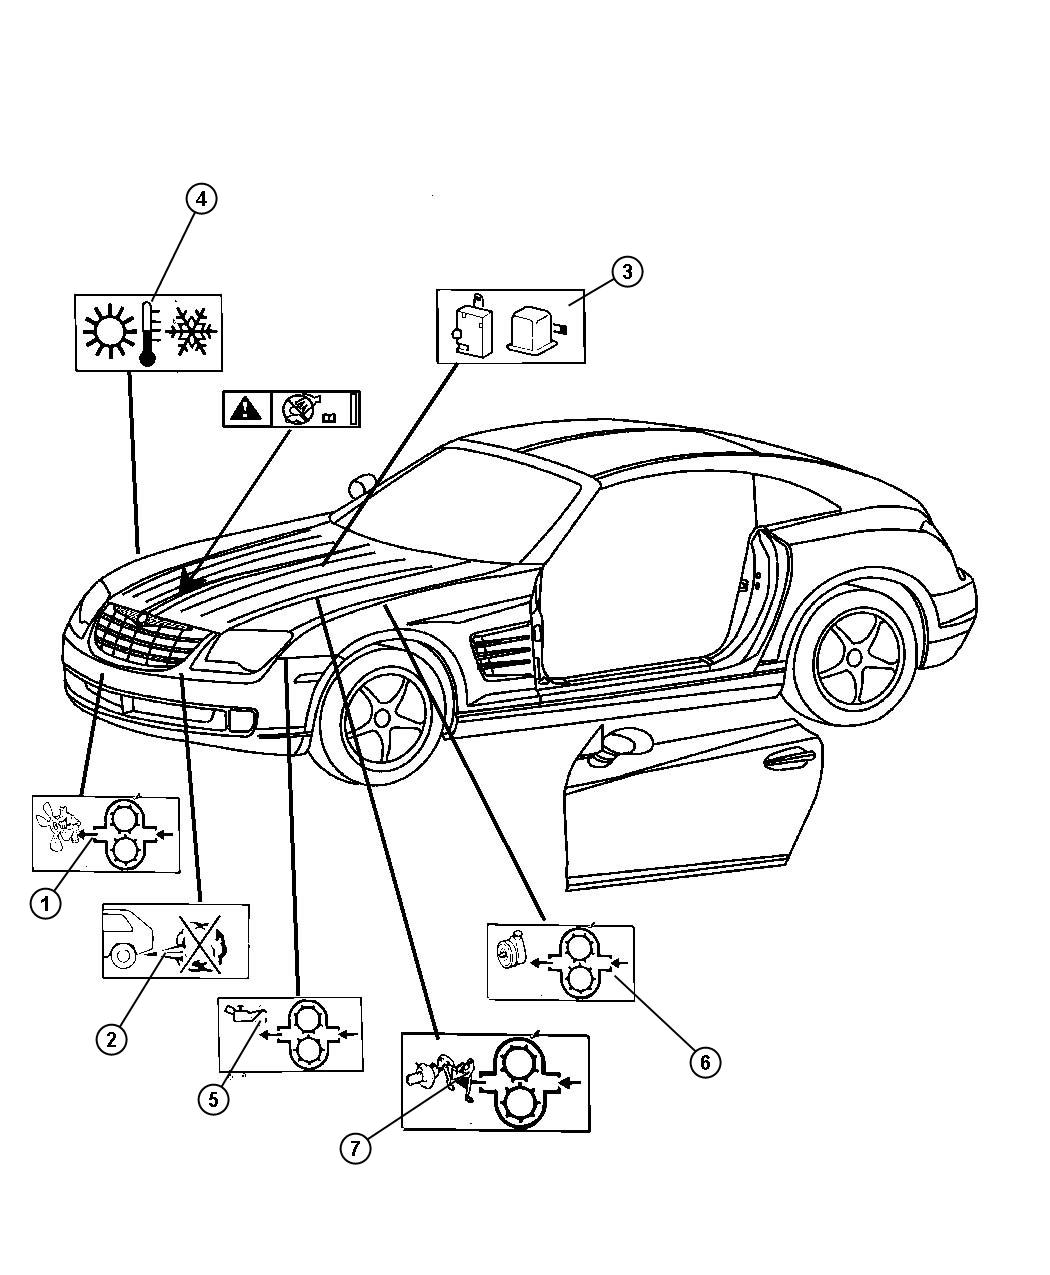 Chrysler Crossfire Label Coolant Warning Without